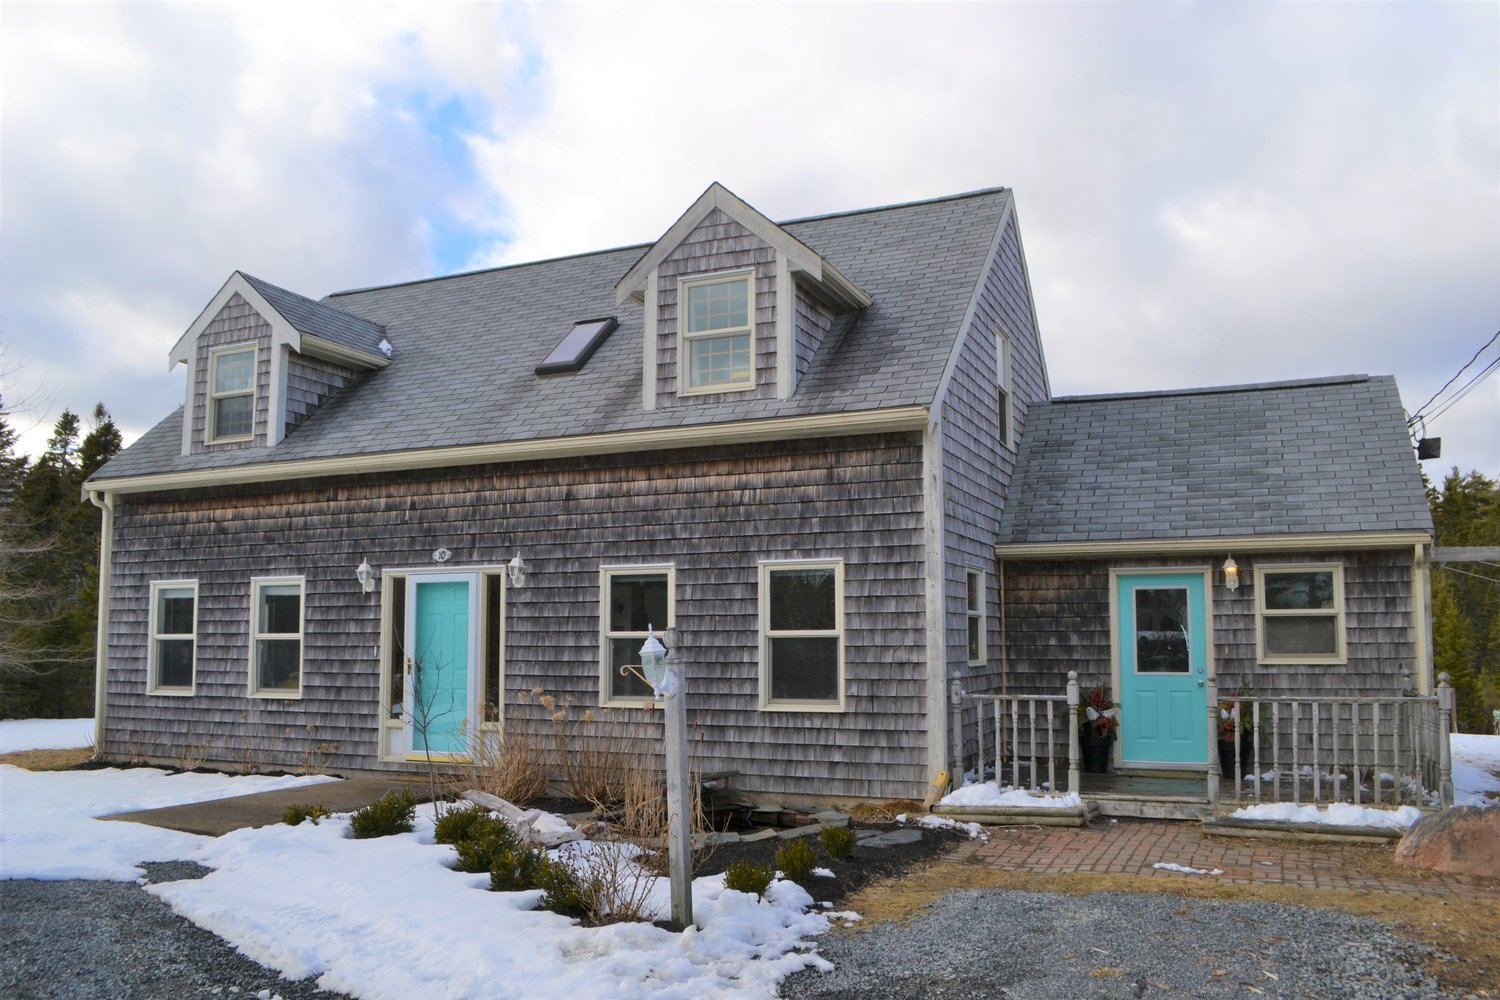 cape estate by number real orleans sale roadorleans cod owner for finlay cottage mls ma cottages listing